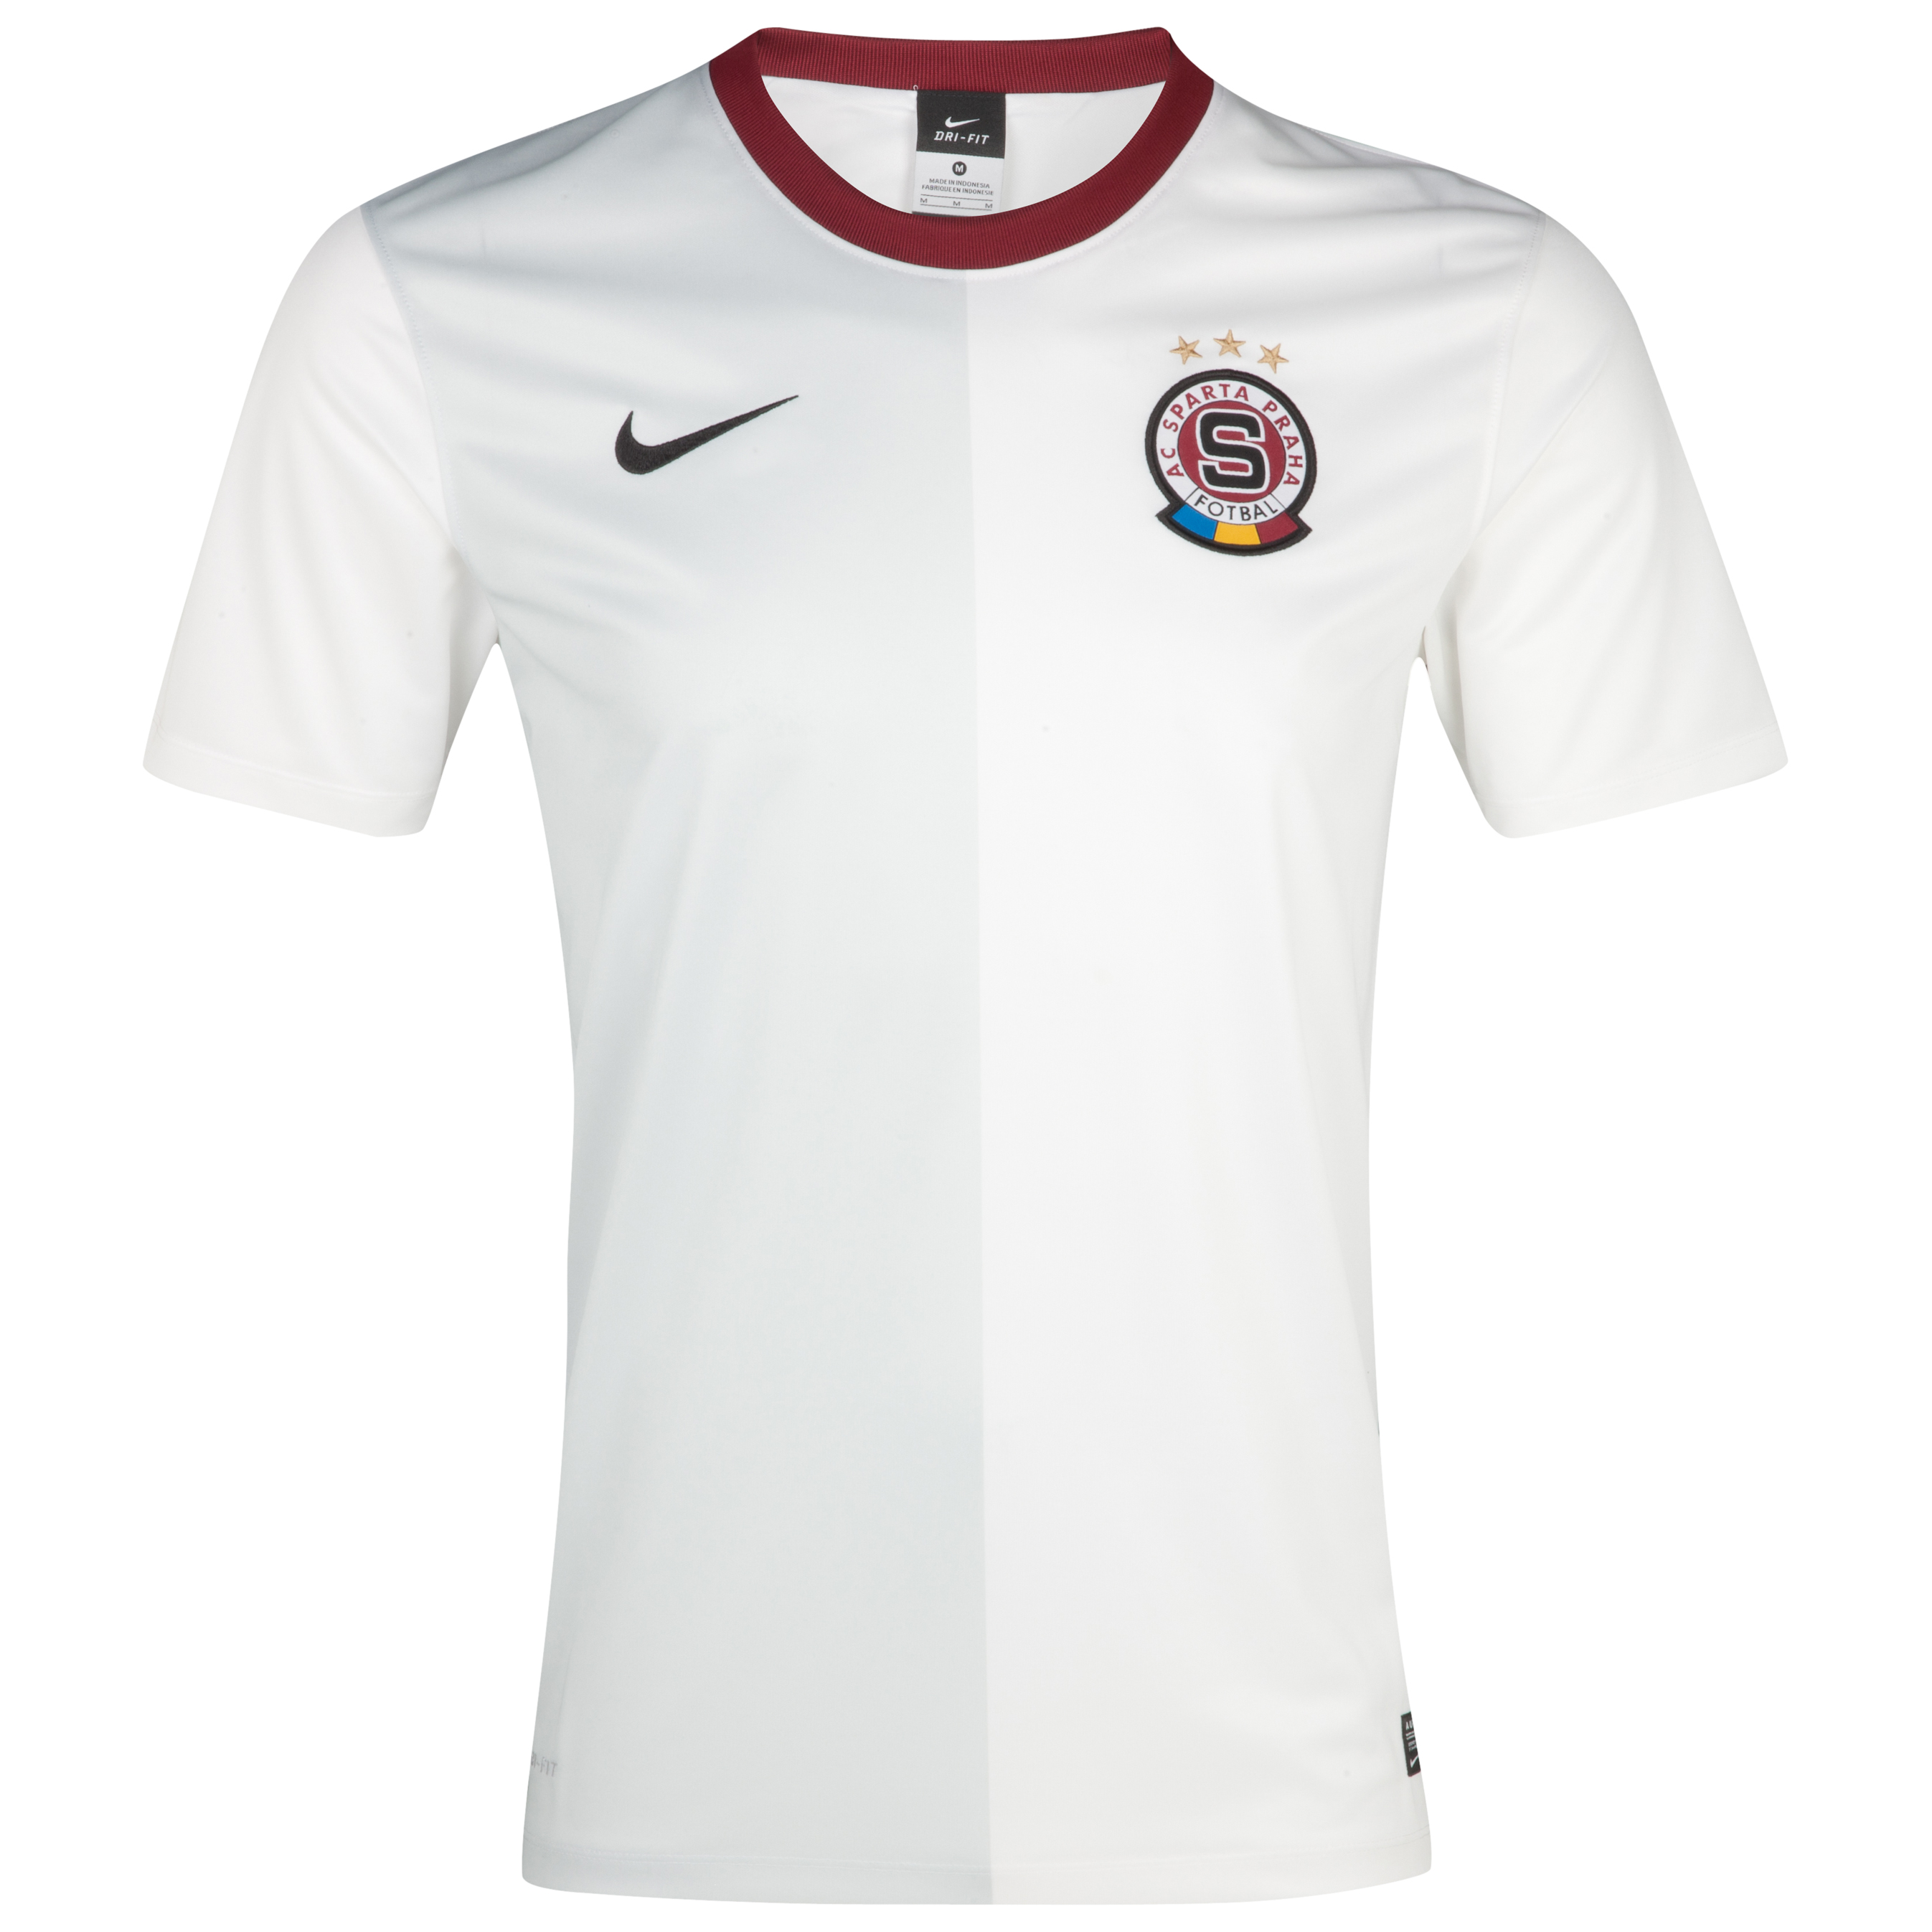 Sparta Prague 2012/13 Away Stadium Shirt - Football White/Team Red/Black